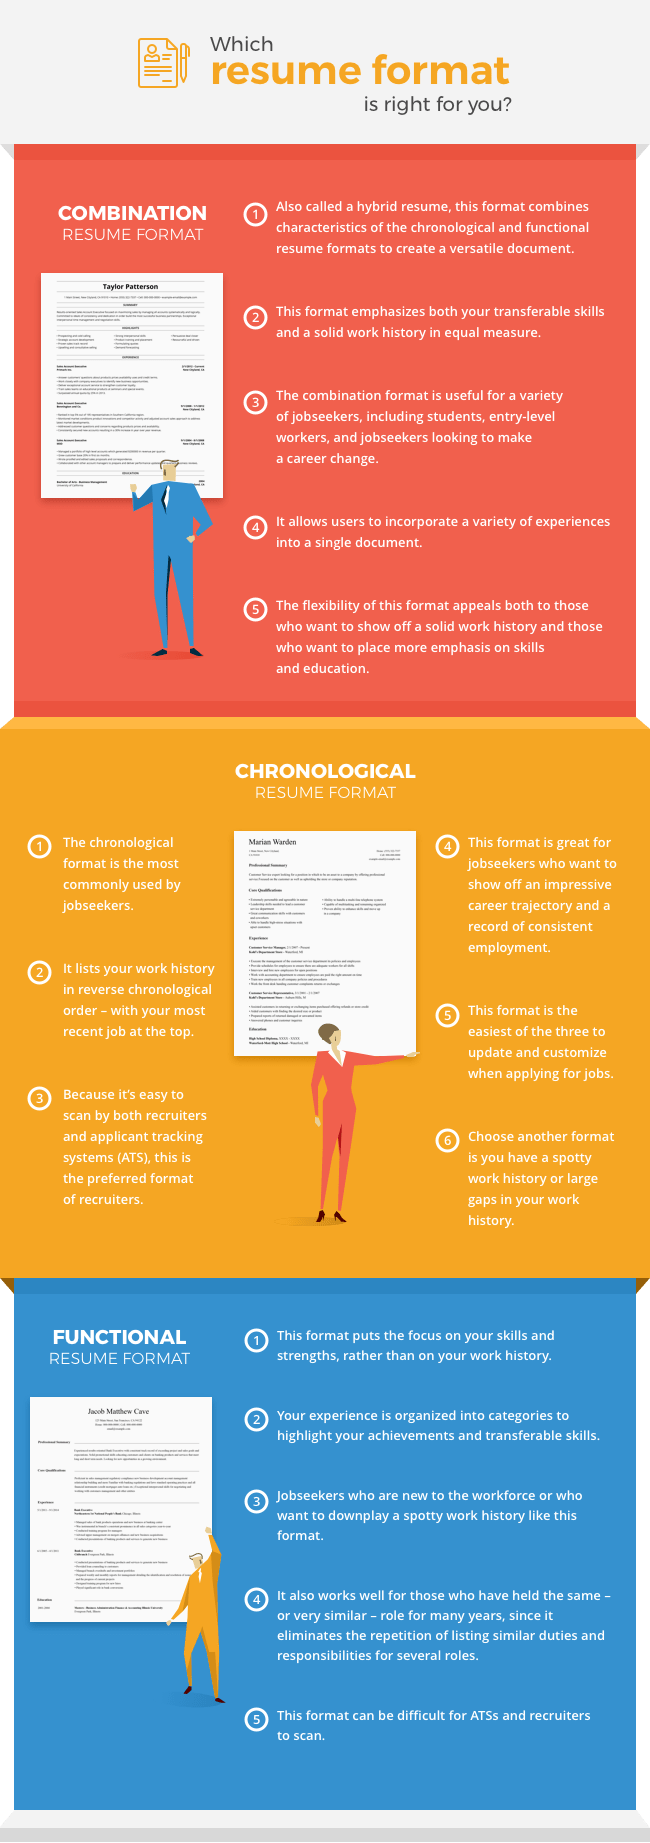 Which Resume Format Is Right For You?